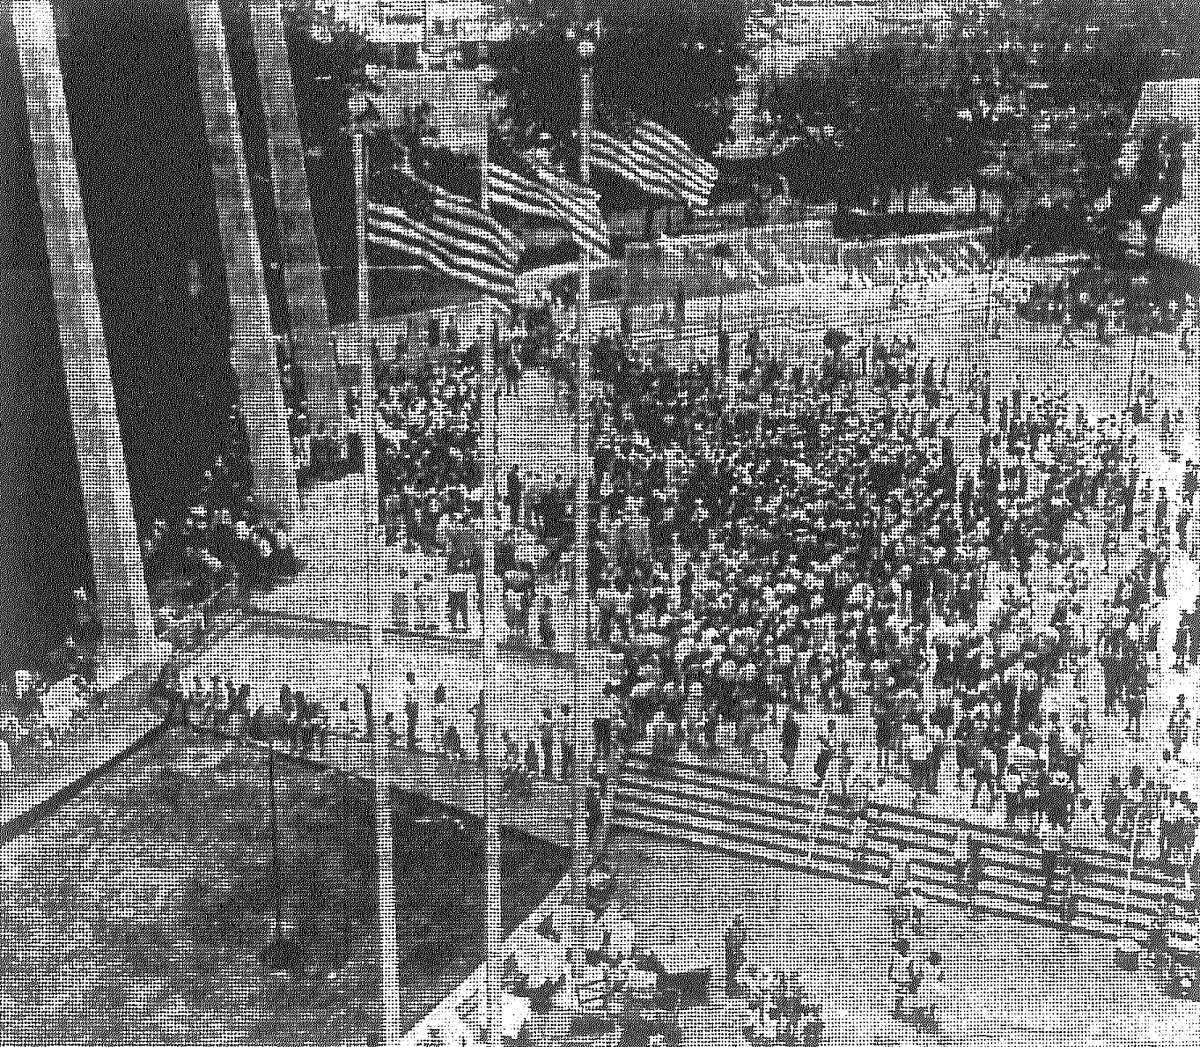 Crowds gather outside the U.S. Pavilion during HemisFair. Published in the San Antonio Light Aug. 7, 1968.